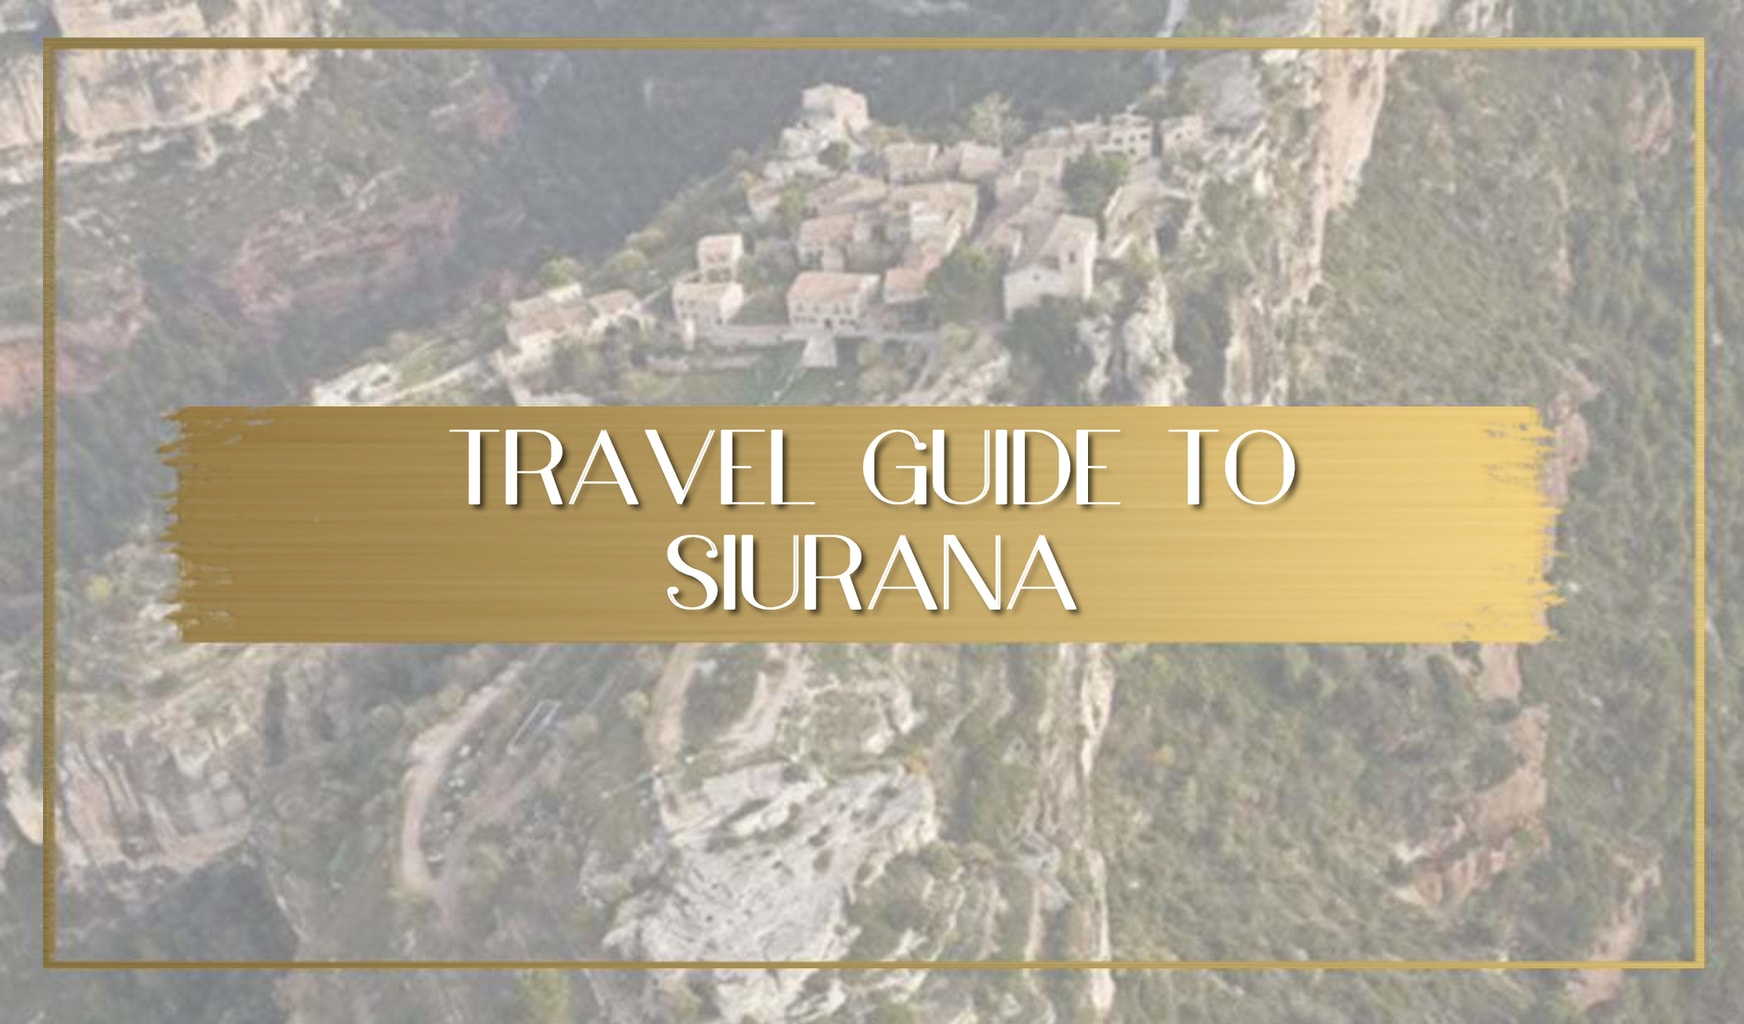 Guide to Siurana Spain main